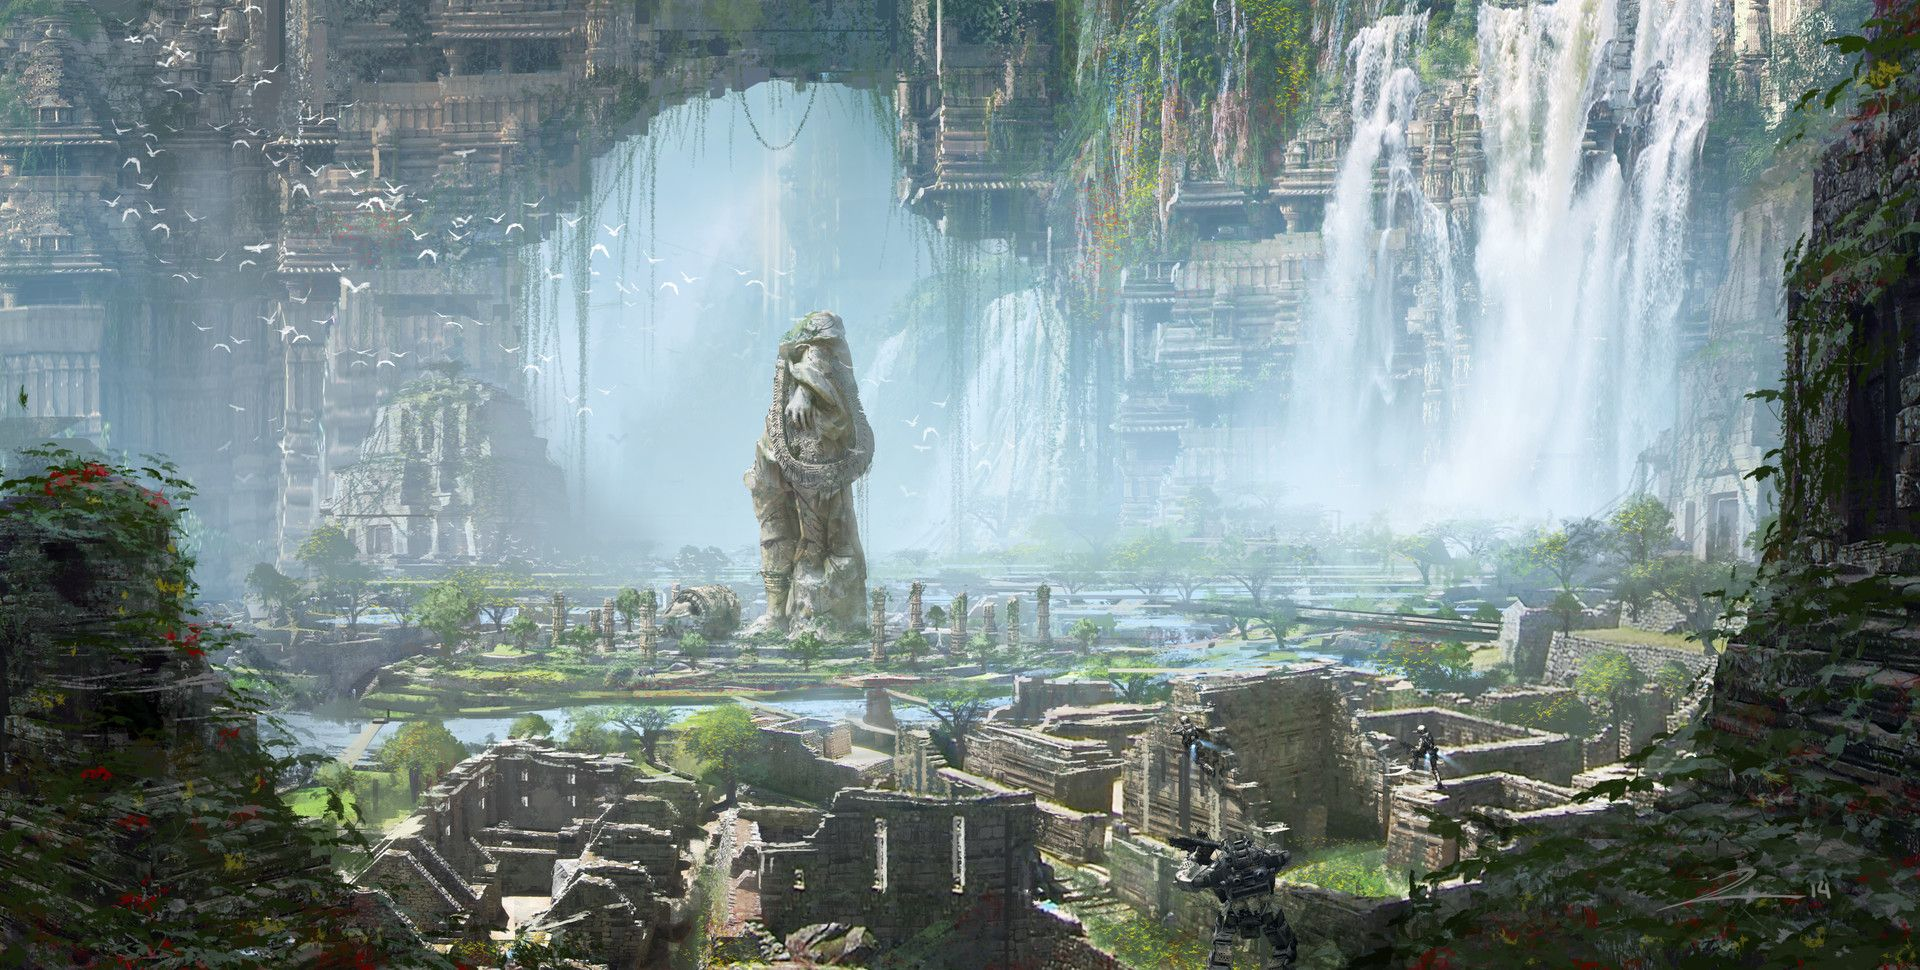 Imaginary Landscapes Scenery born from the minds of